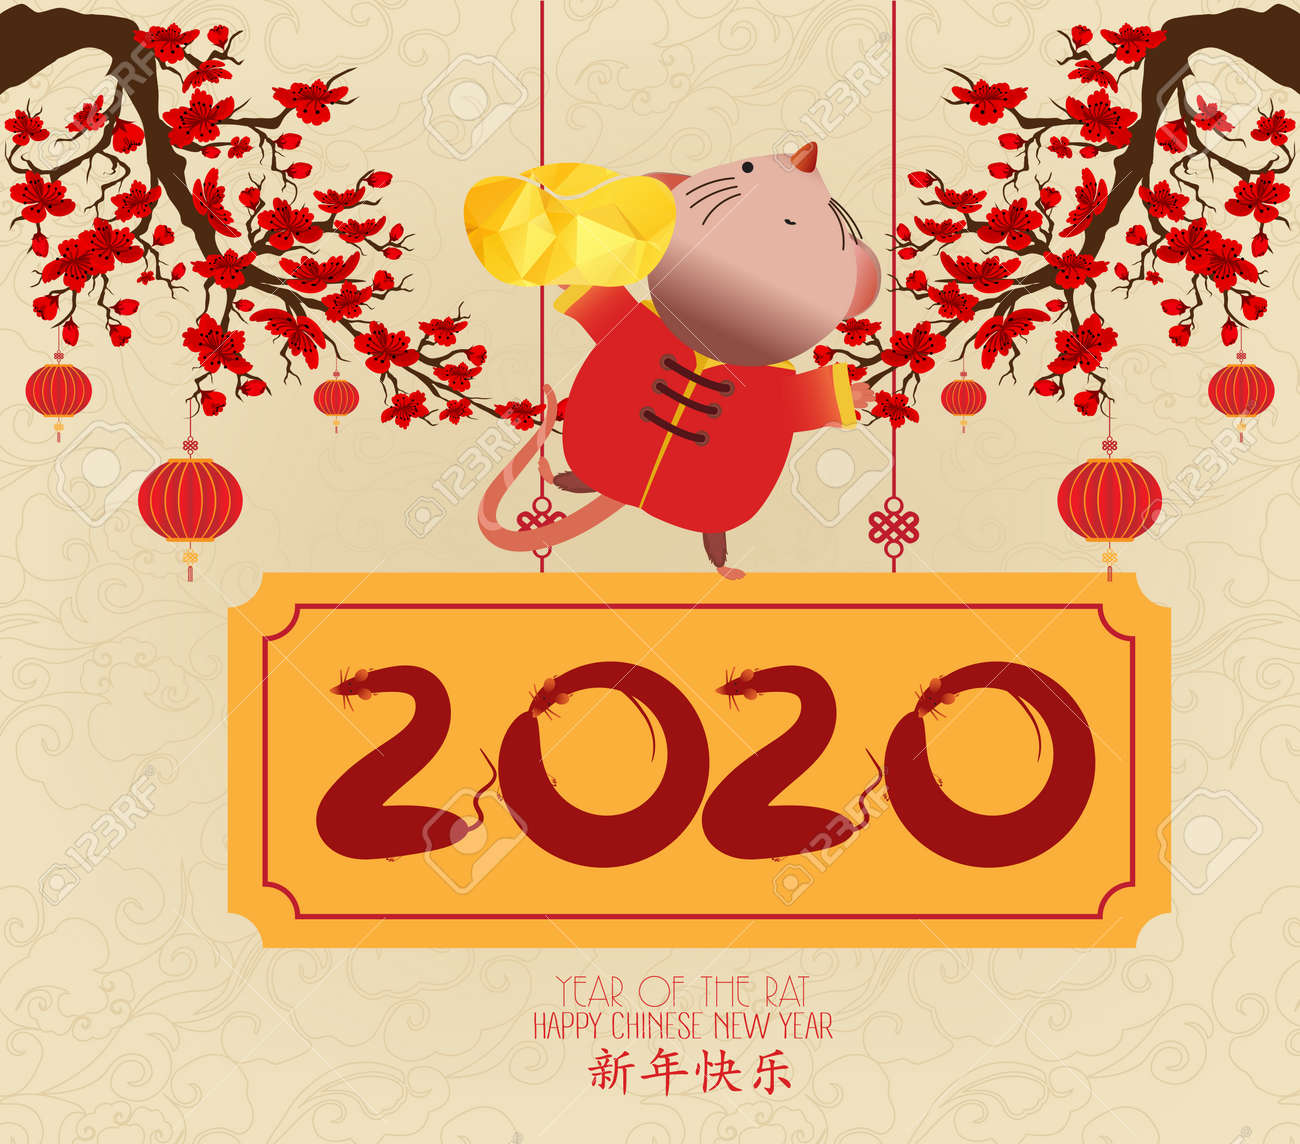 Chinese New Year 2020 Year Of The.Chinese New Year 2020 Year Of The Rat Red And Gold Paper Cut